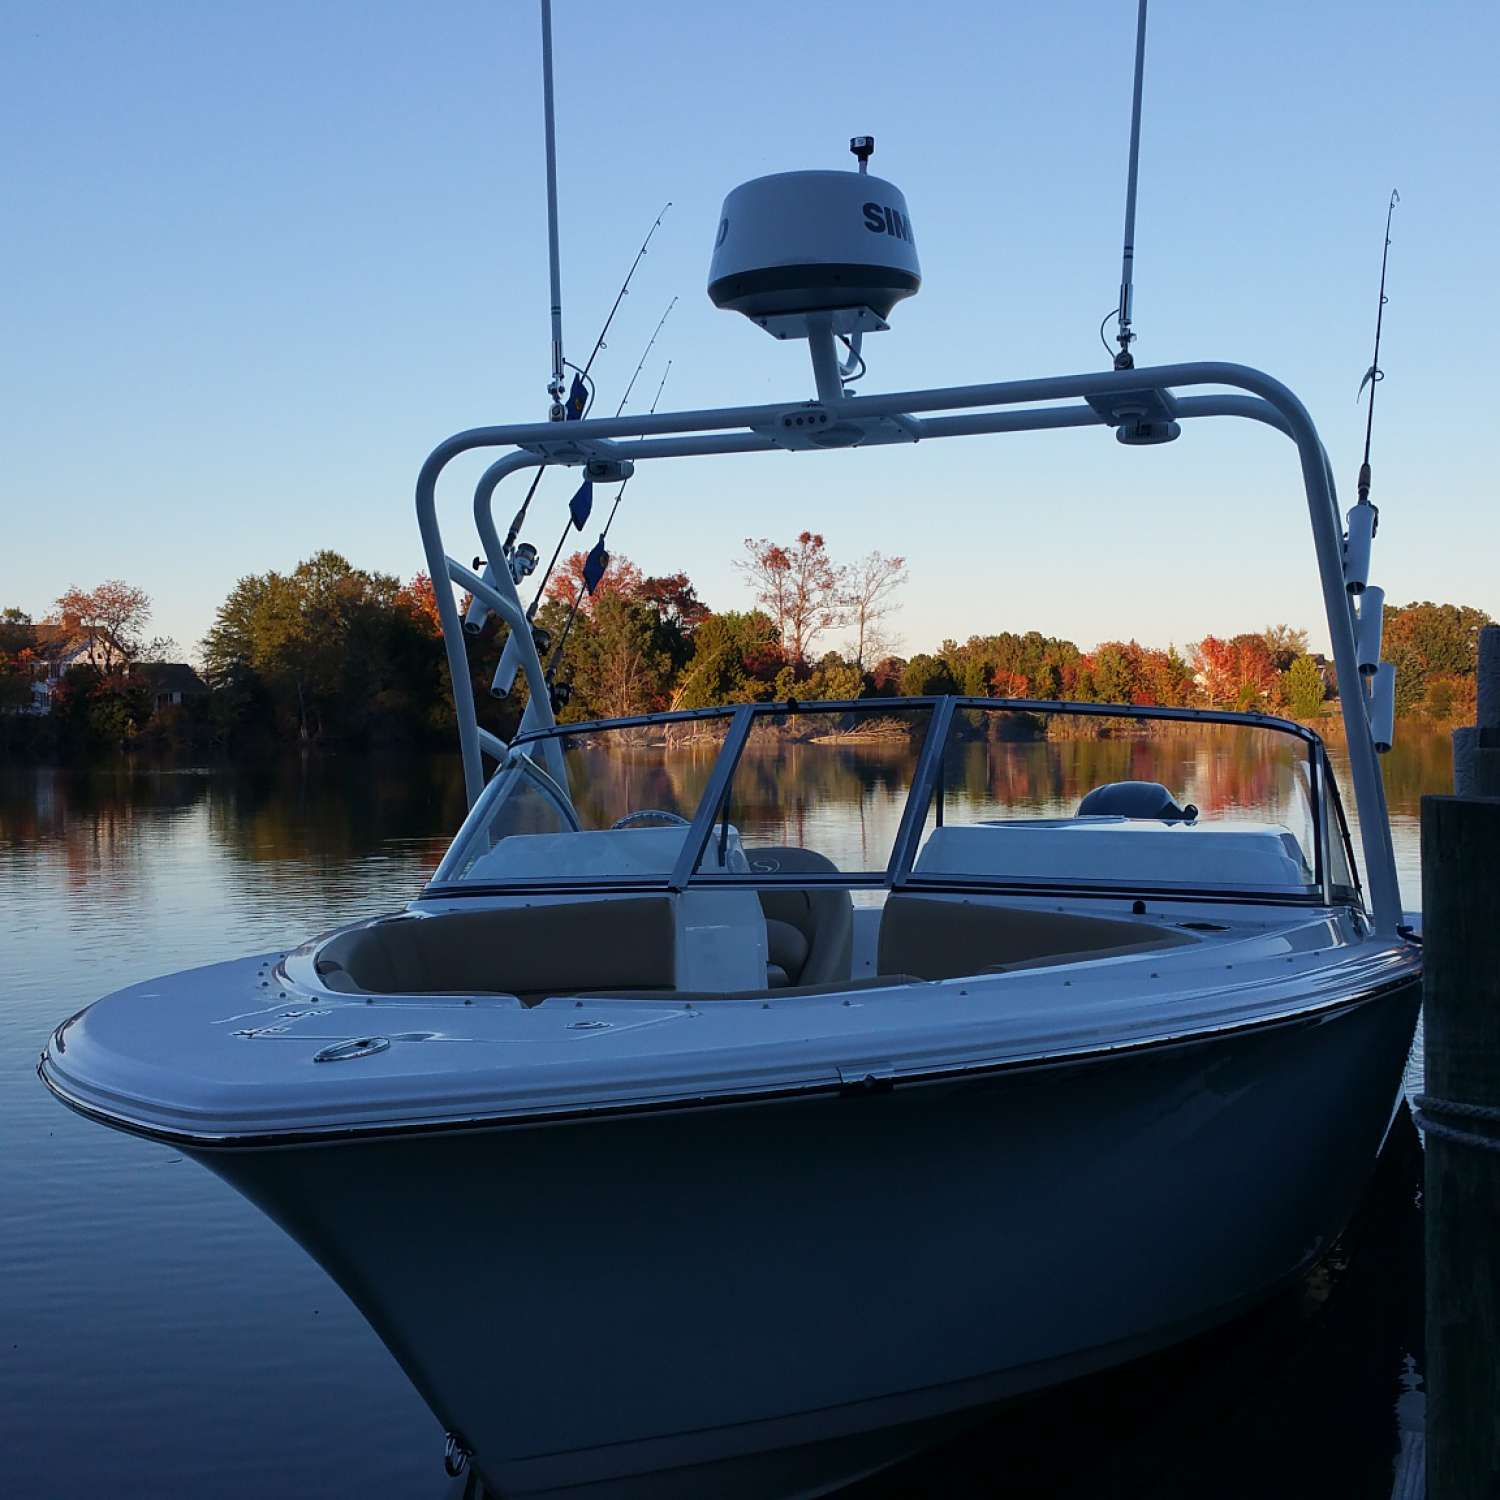 Title: Fall Fishing On The Chesapeak - On board their Sportsman More Than One - Location: Dameron, Maryland. Participating in the Photo Contest #SportsmanDecember2015